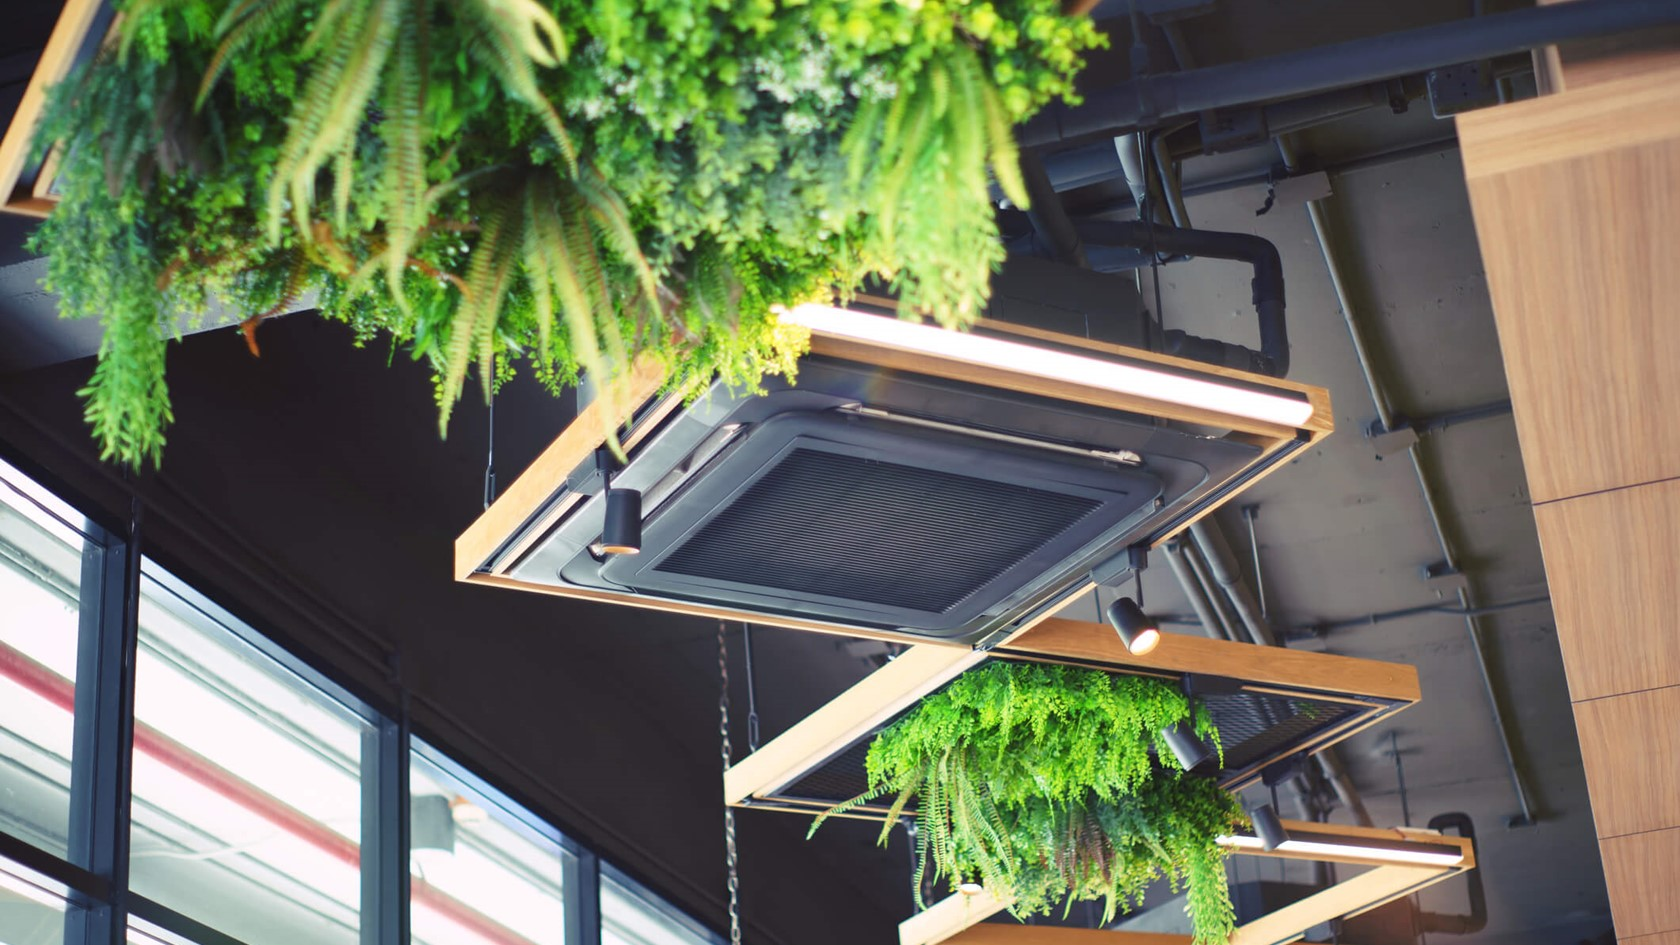 An electric commercial heater unit hangs from the ceiling in a modern cafe.